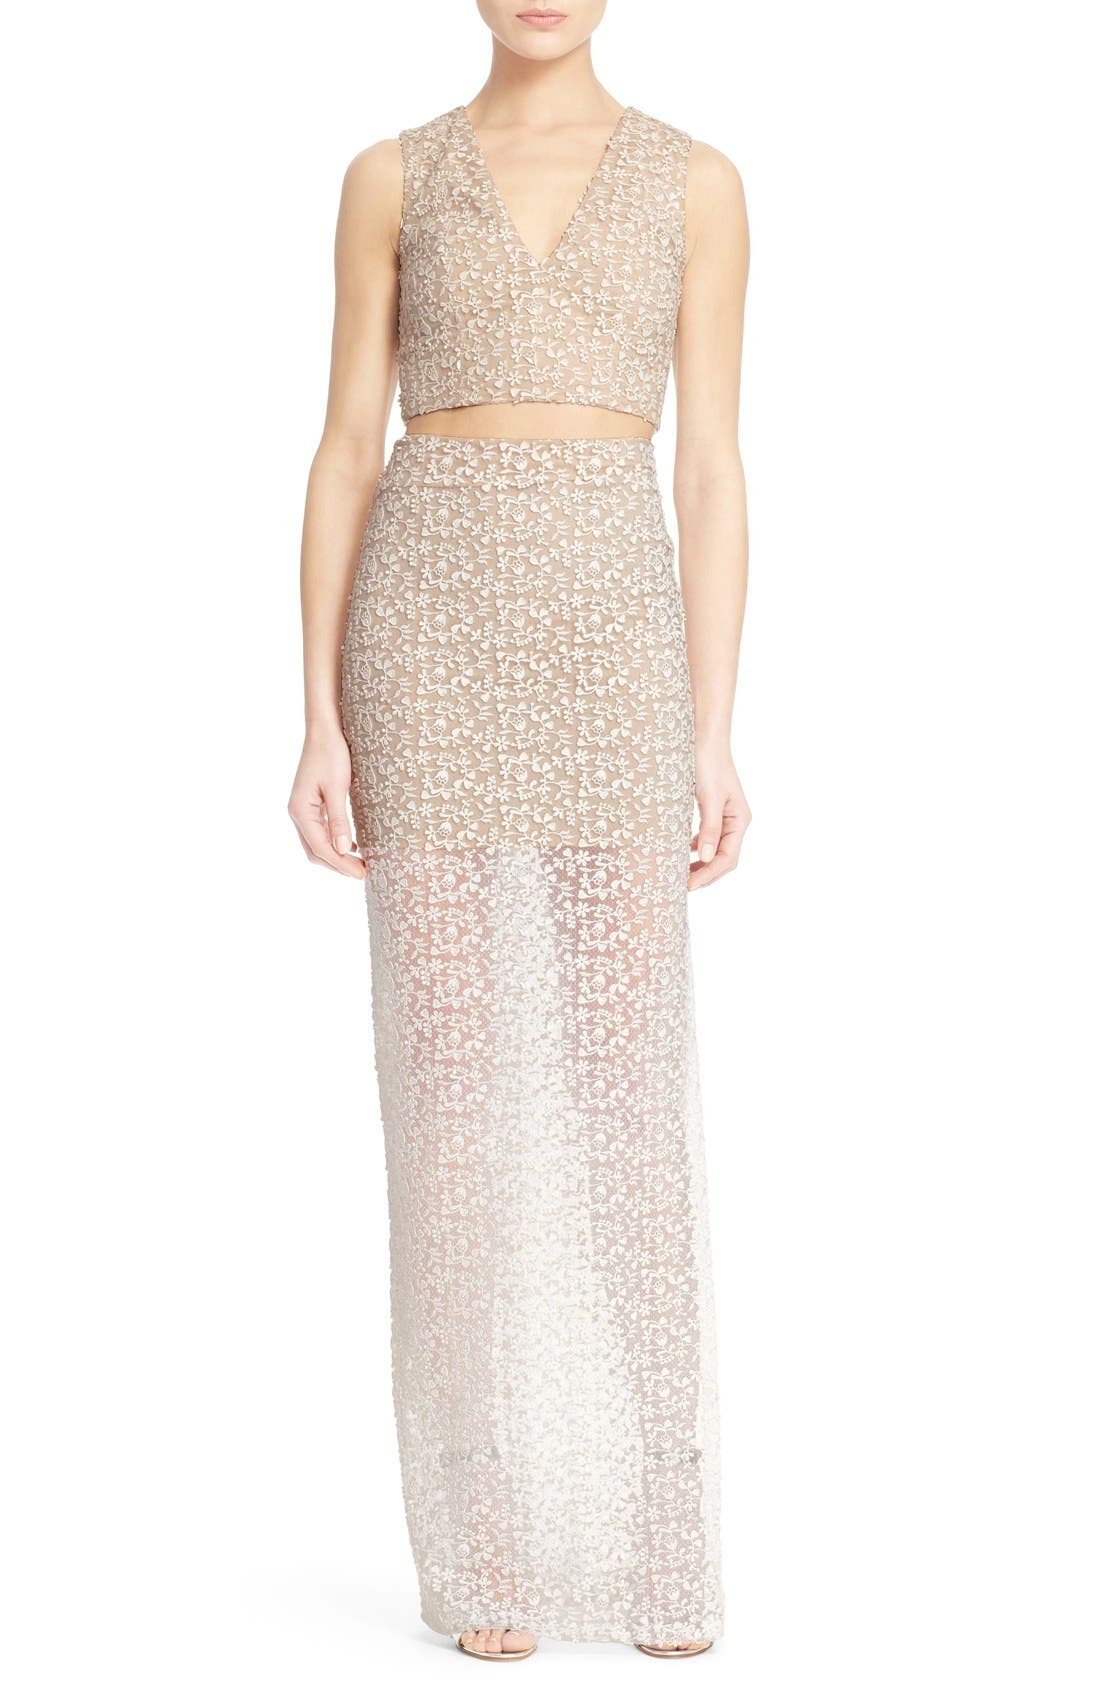 Alternate Image 2  - Alice + Olivia 'Jaya' Illusion Lace V-Neck Crop Top